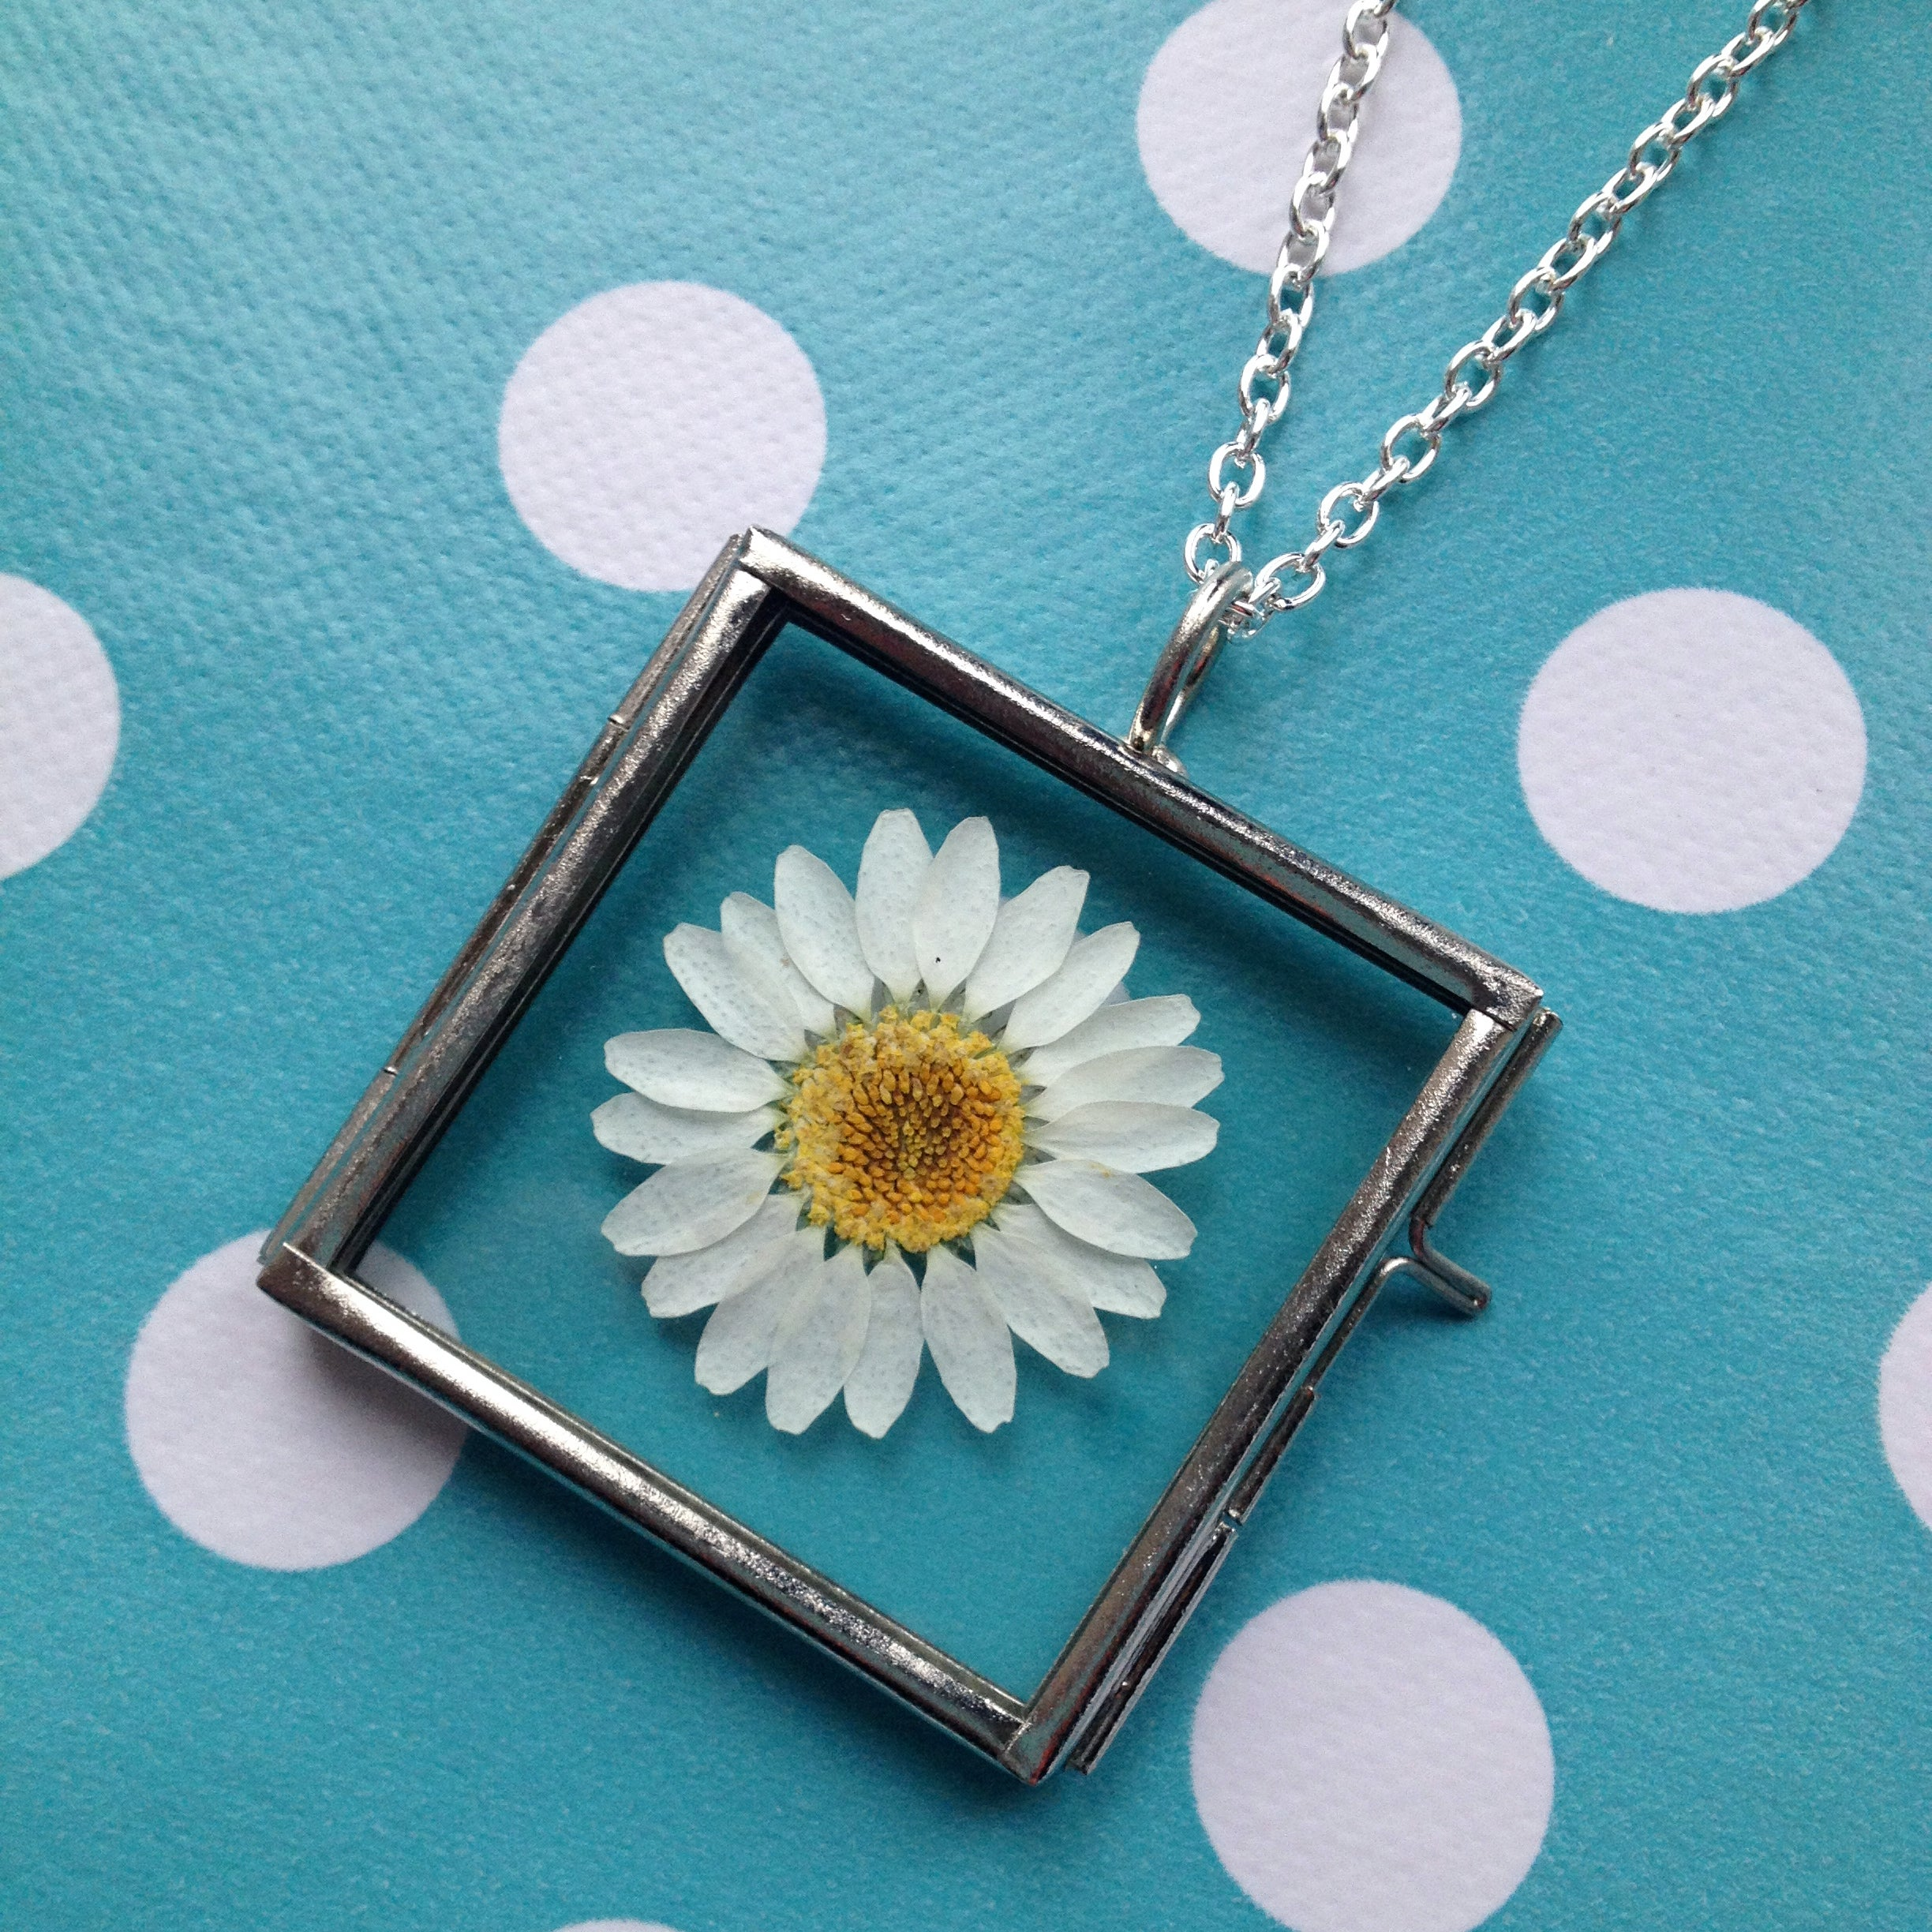 Image of Pressed Flower Pendant Necklace - Daisy